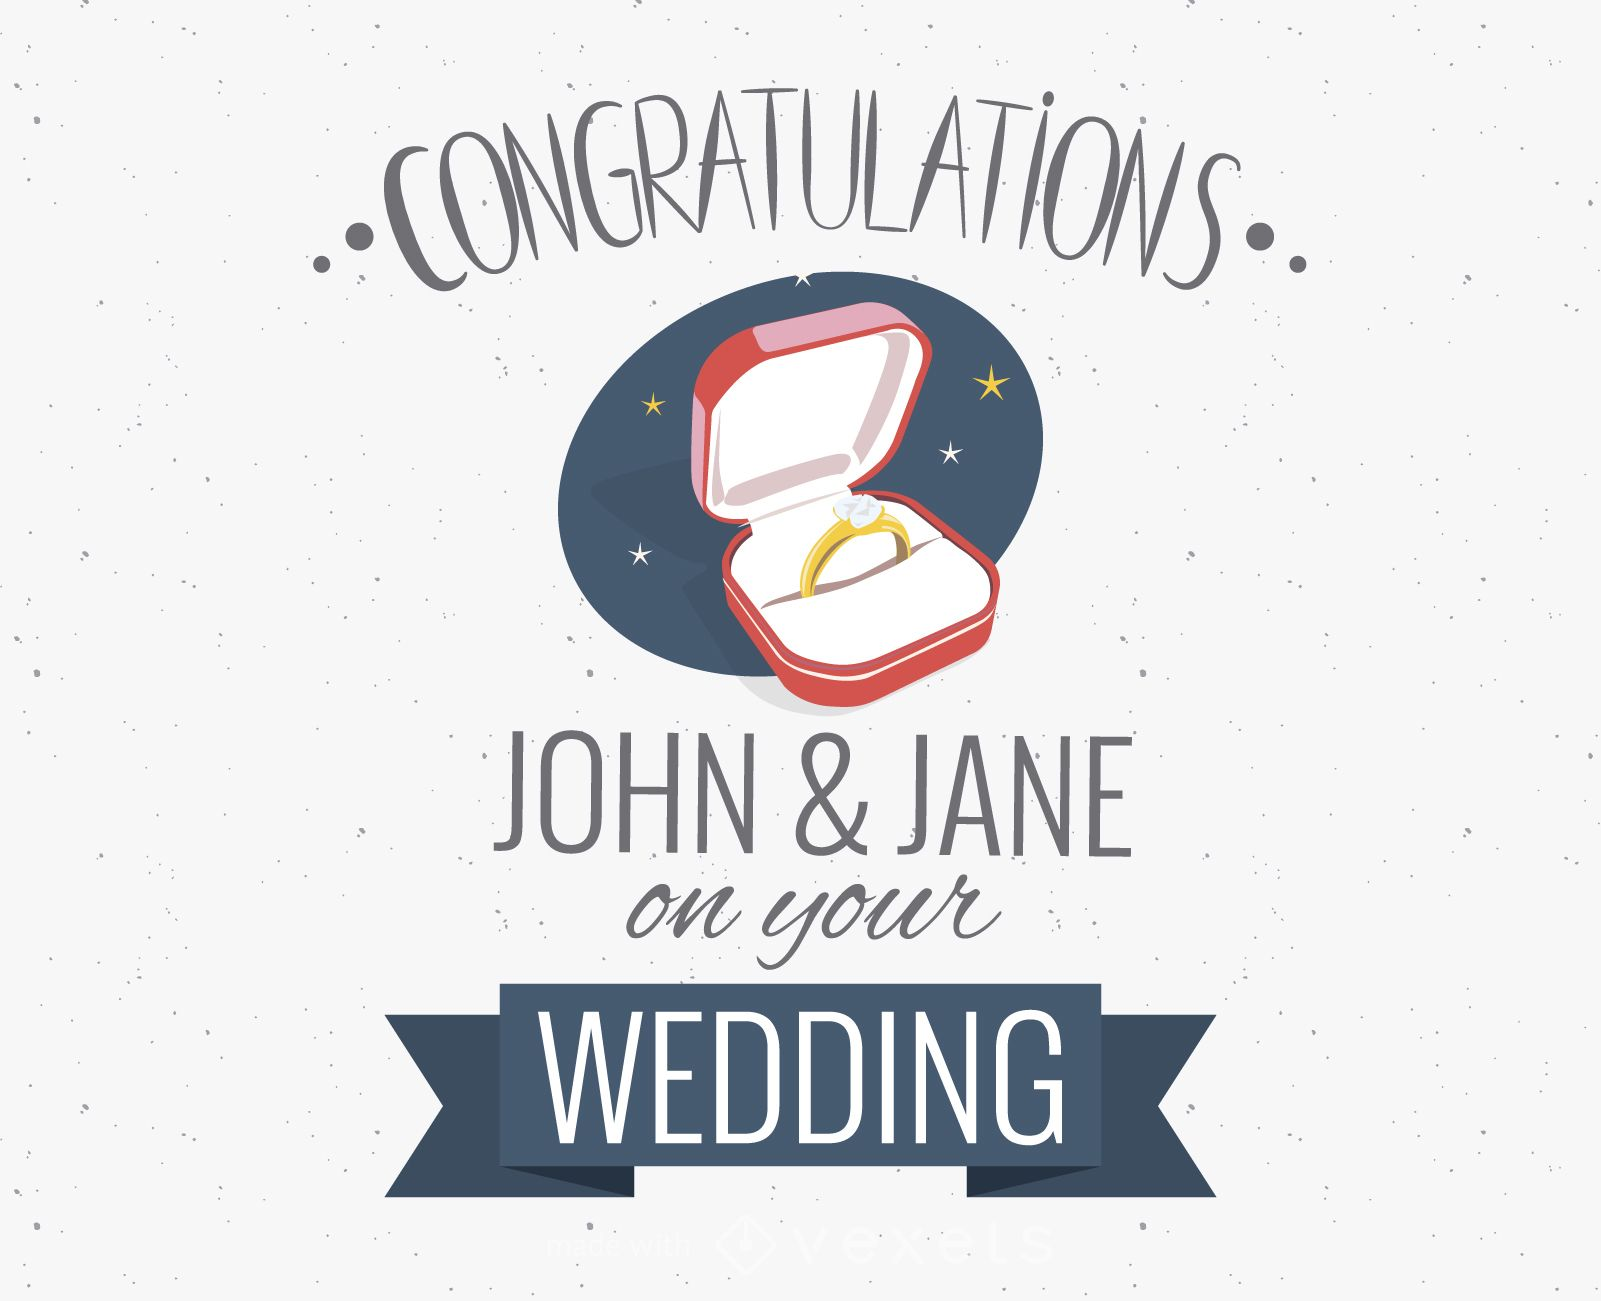 Wedding congratulations greeting card maker Editable design